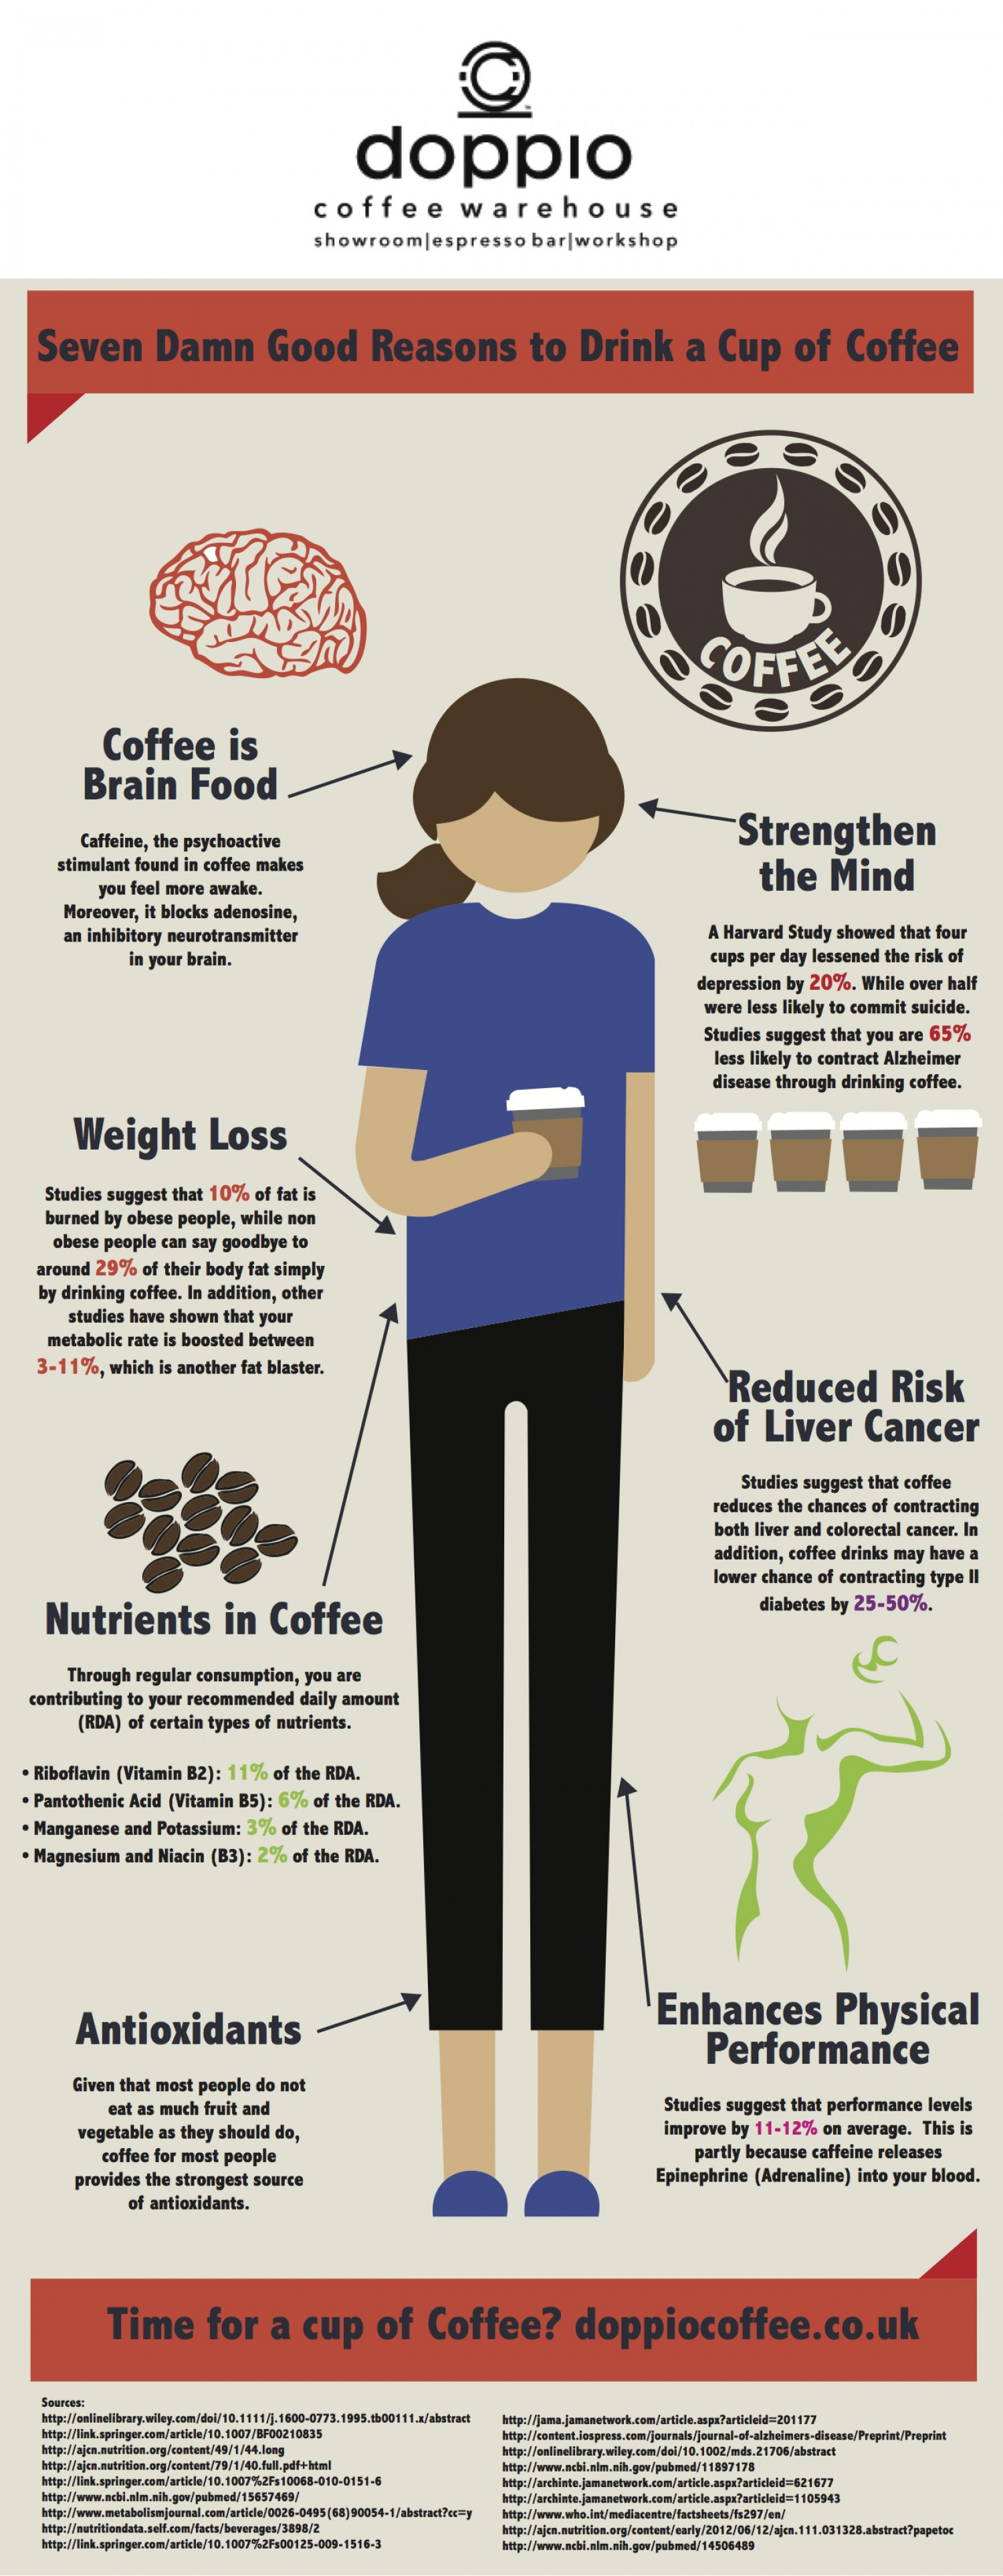 7 Health Benefits of Drinking Coffee Infographic